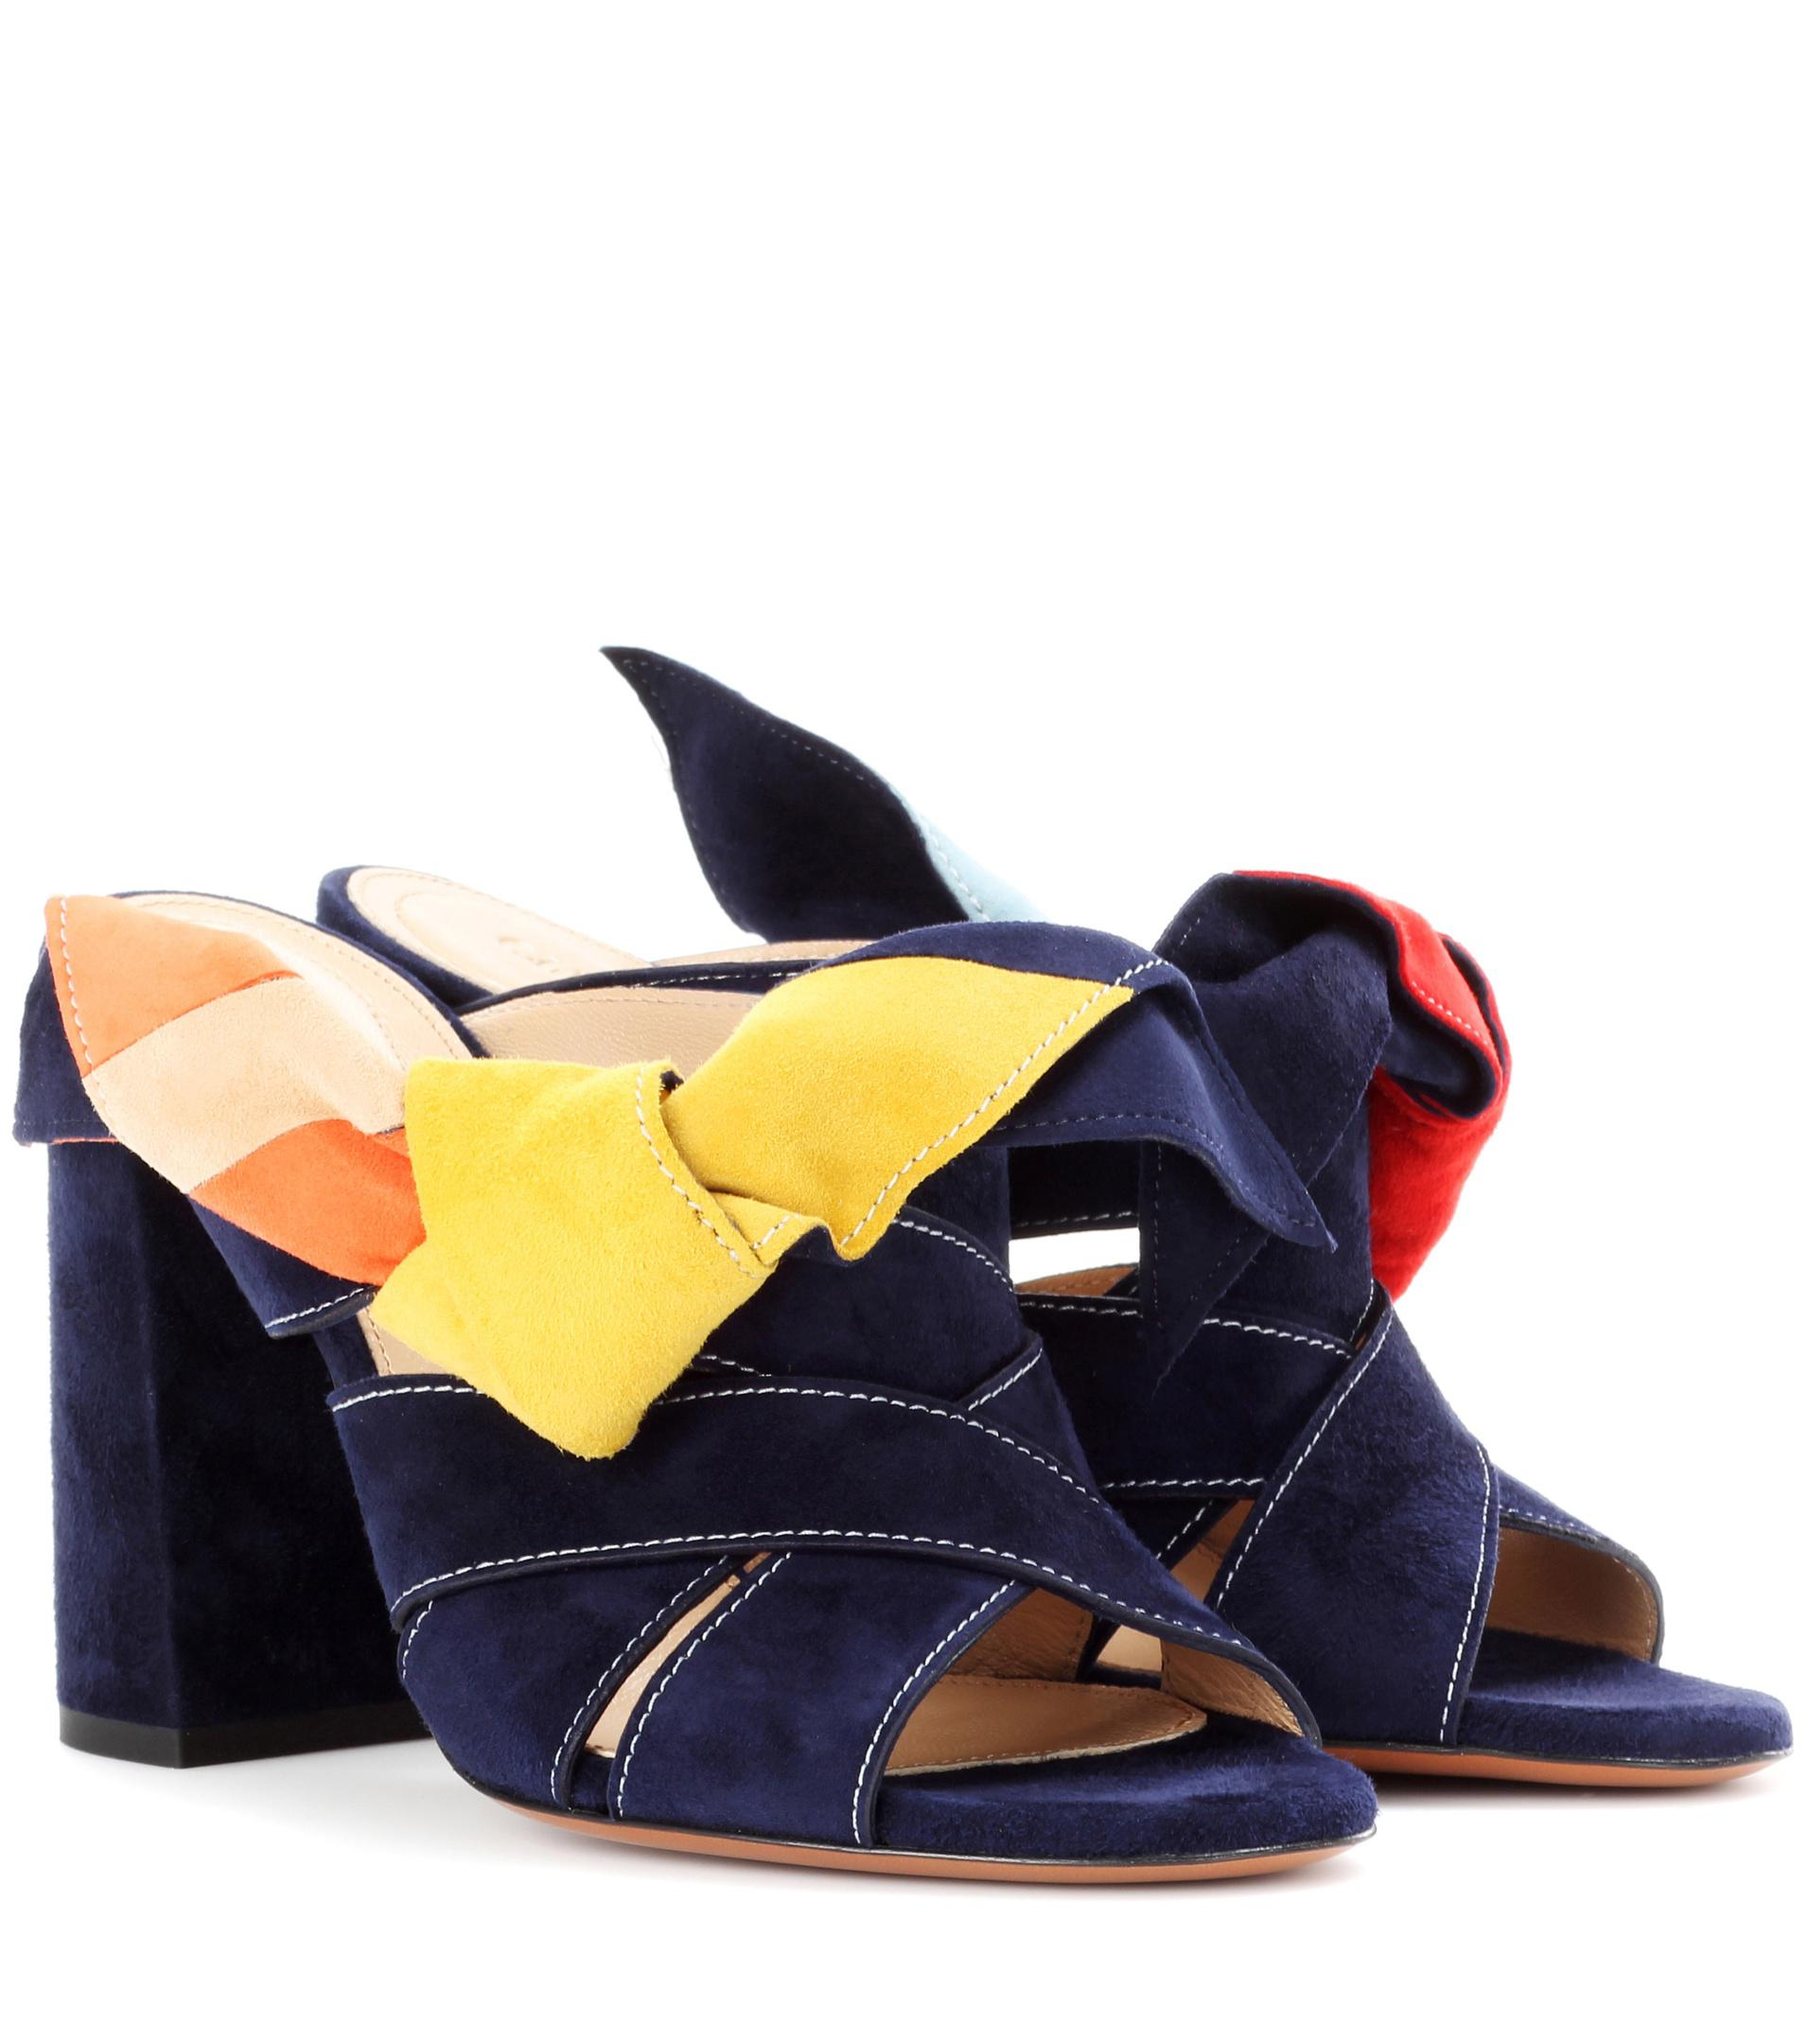 Manchester Great Sale Cheap Price Sale For Sale Chloé Nellie suede mules 7XrXteb